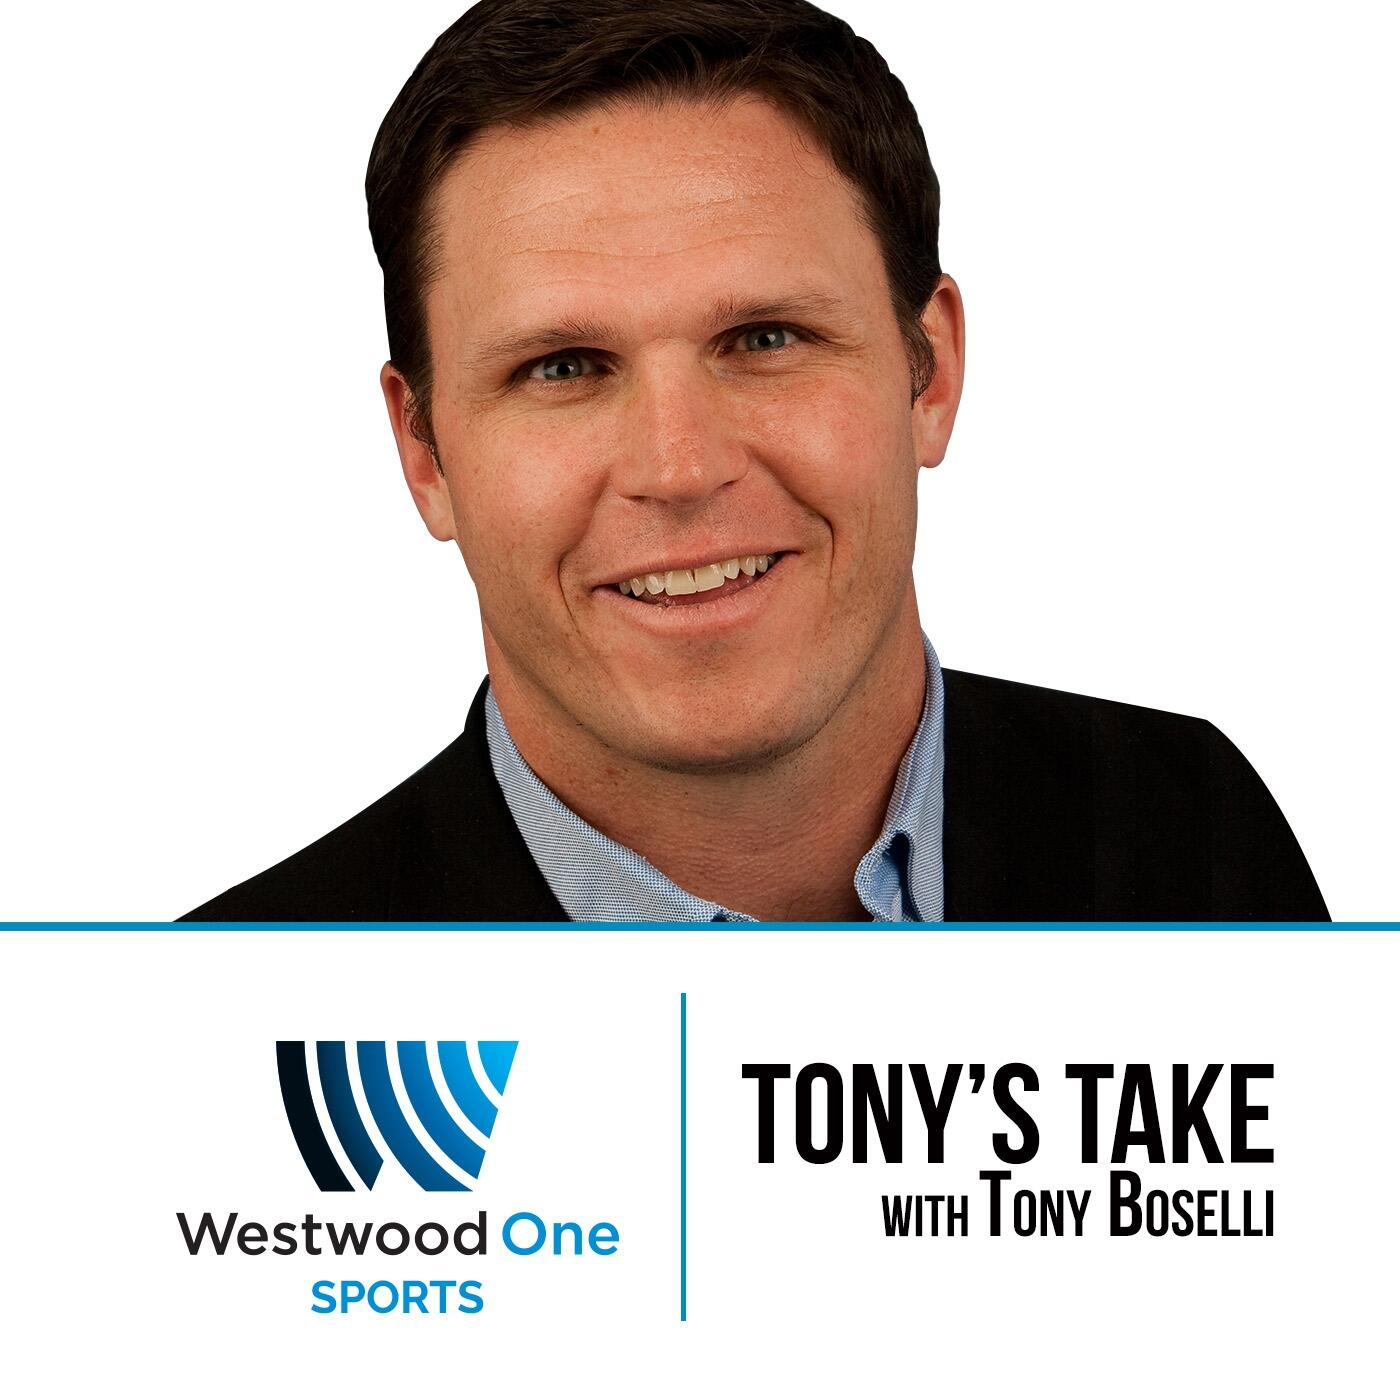 Tony's Take with Tony Boselli